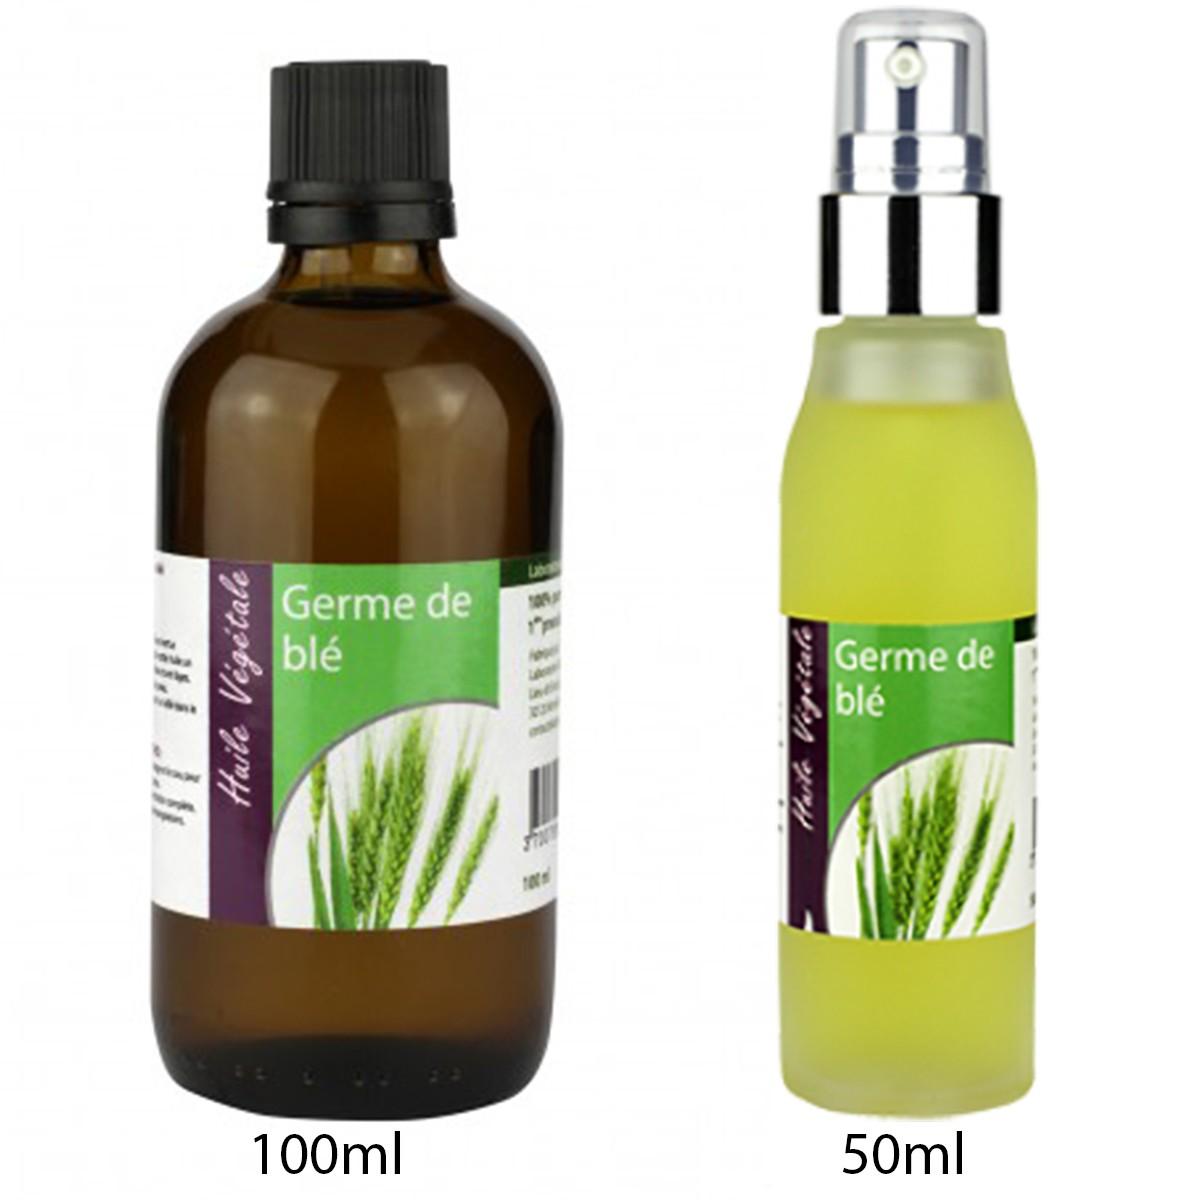 Aceite Vegetal de germen de trigo BIO Laboratorio Altho